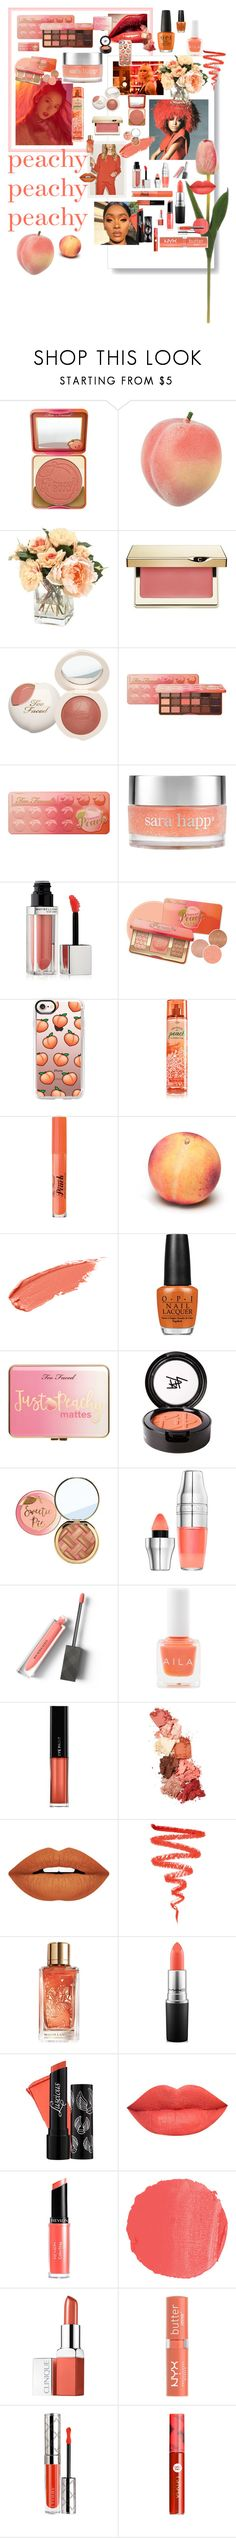 """""""Peachy Peachy Peachy"""" by whenlifegivesyoulemonsandlimes ❤ liked on Polyvore featuring beauty, Too Faced Cosmetics, Clarins, Sara Happ, Maybelline, Casetify, OPI, Just Peachy, Beauty Is Life and Lancôme"""